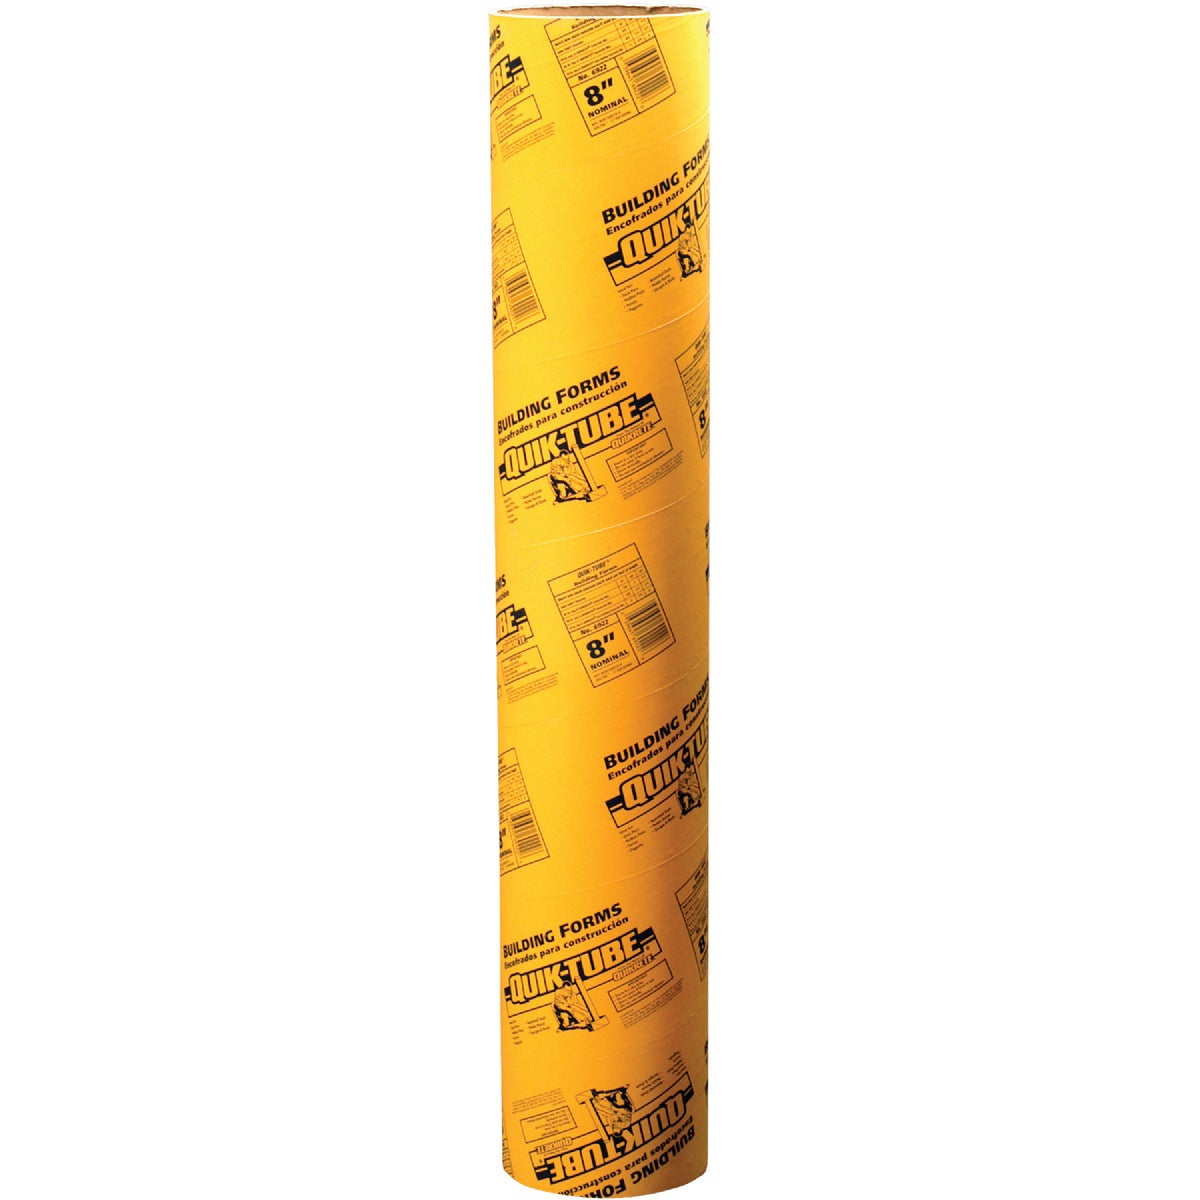 "8"" CONCRETE FORM TUBE - 692201 by Quikrete Co"